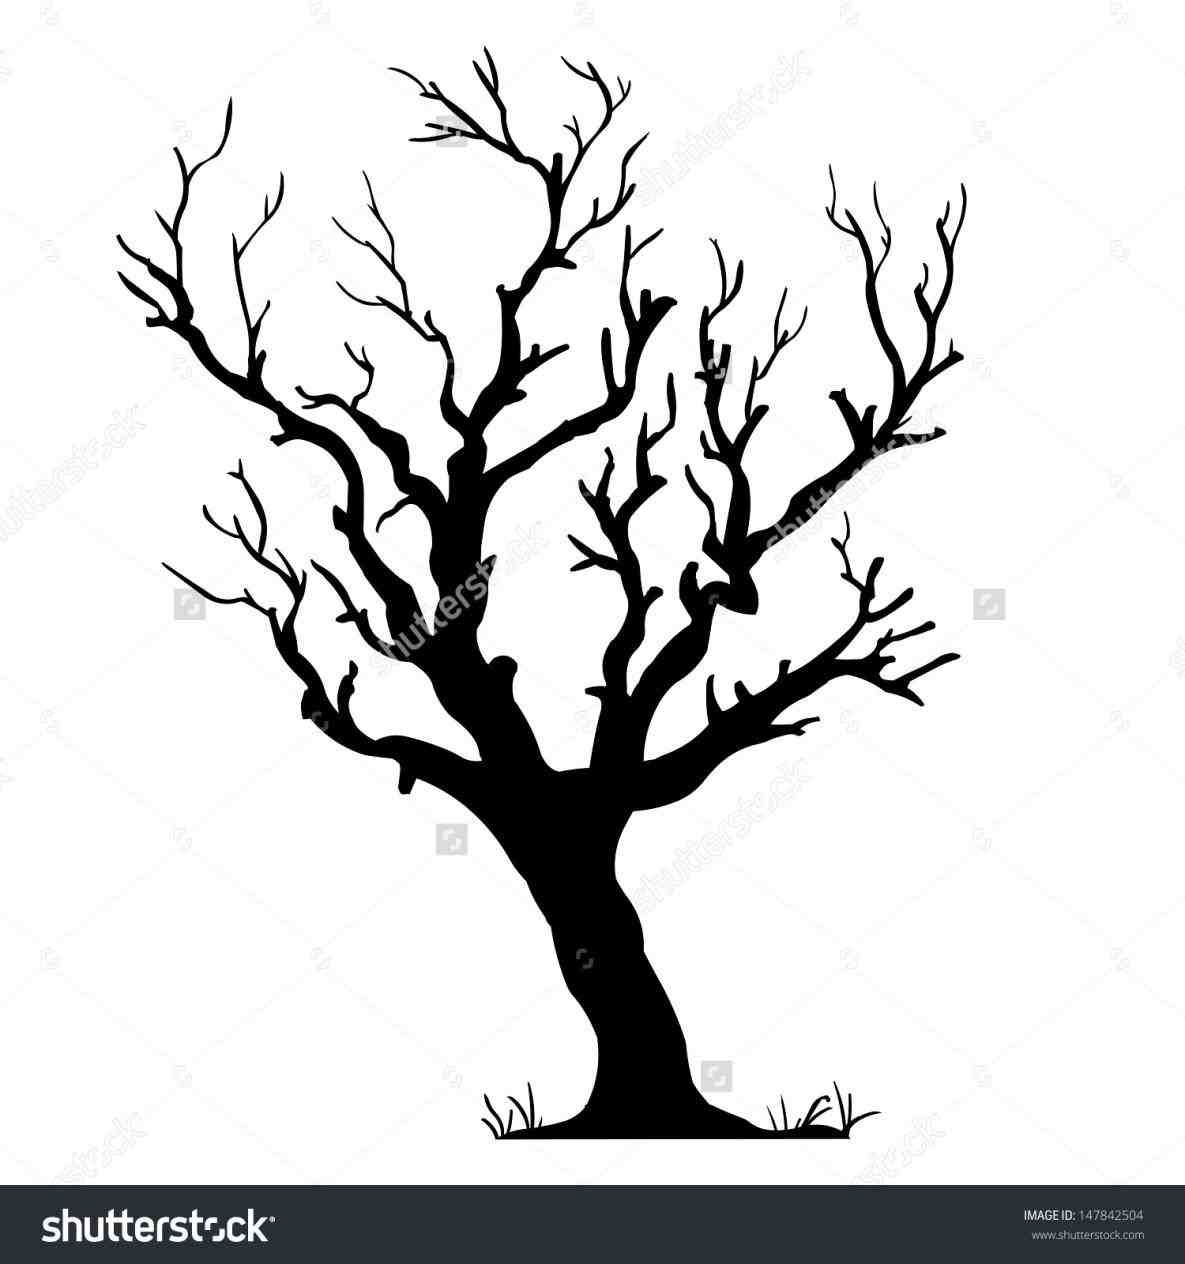 1185x1264 Leafless Tree Line Drawing Lazer Cnc Ideas Wood